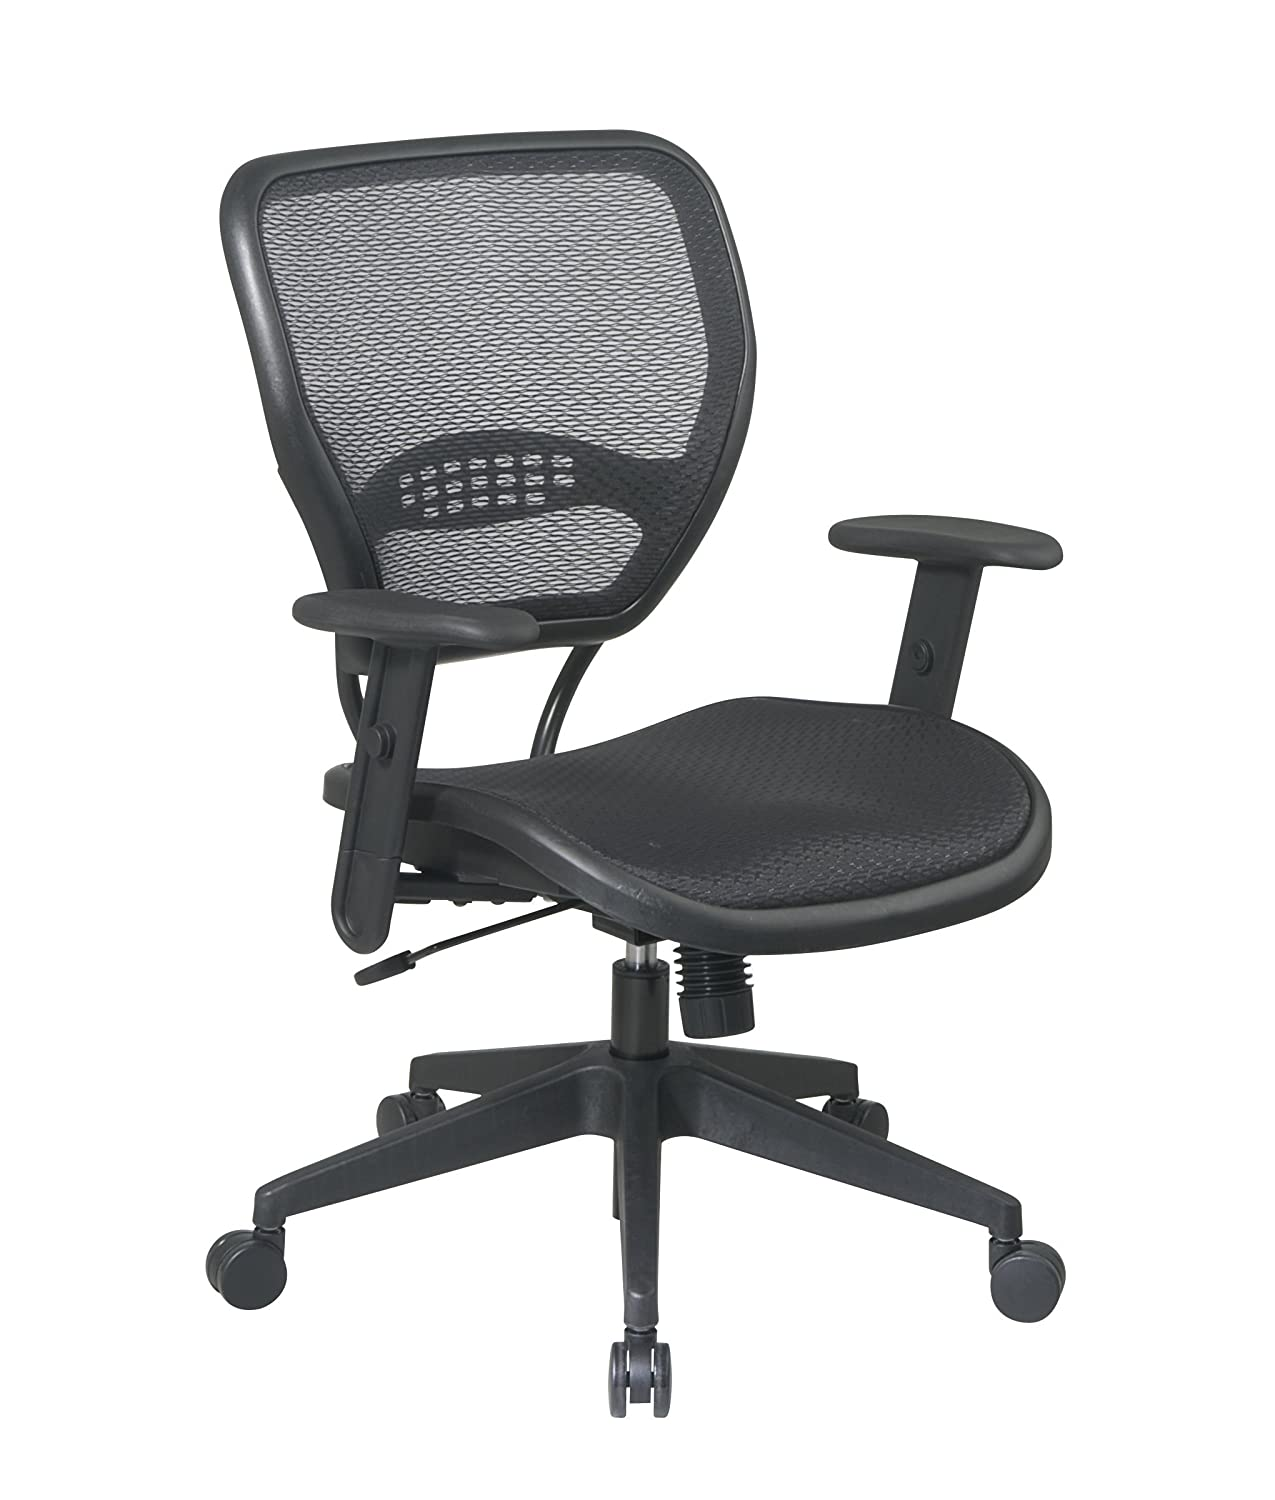 com dp kitchen mesh space x amazon grid deluxe chair task air office dining black